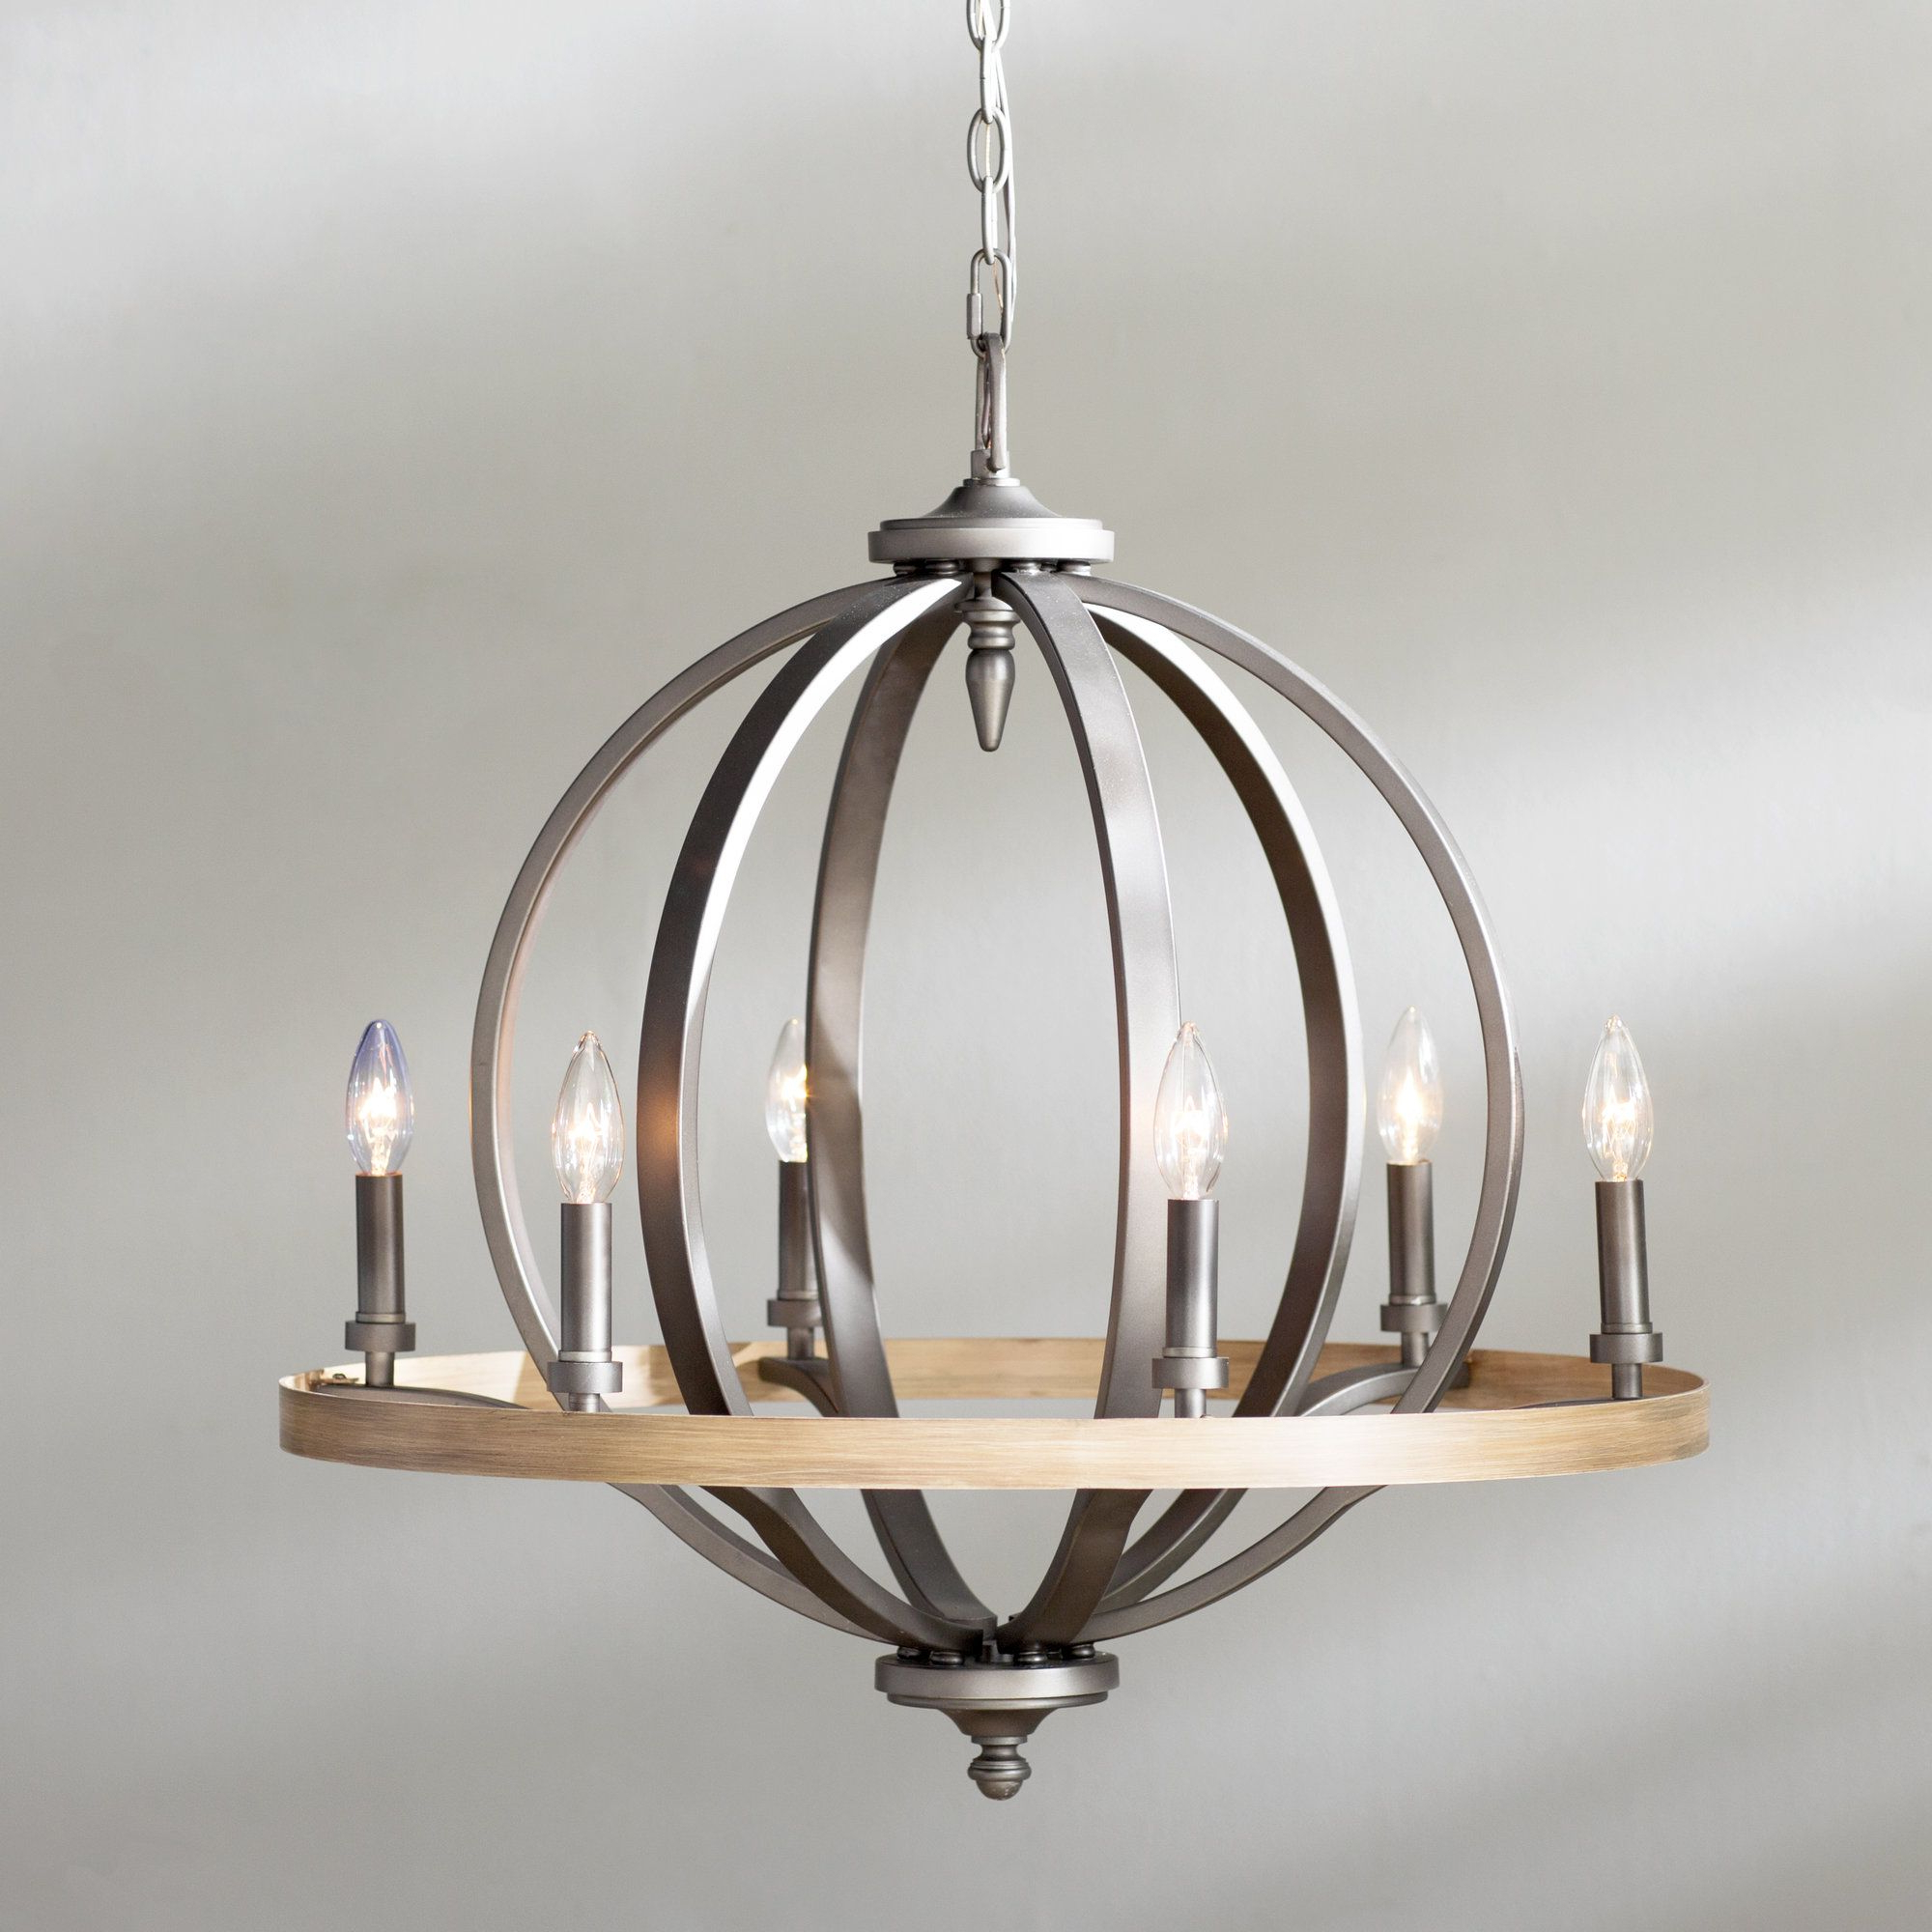 Crozier 6 Light Candle Style Chandelier (View 9 of 25)